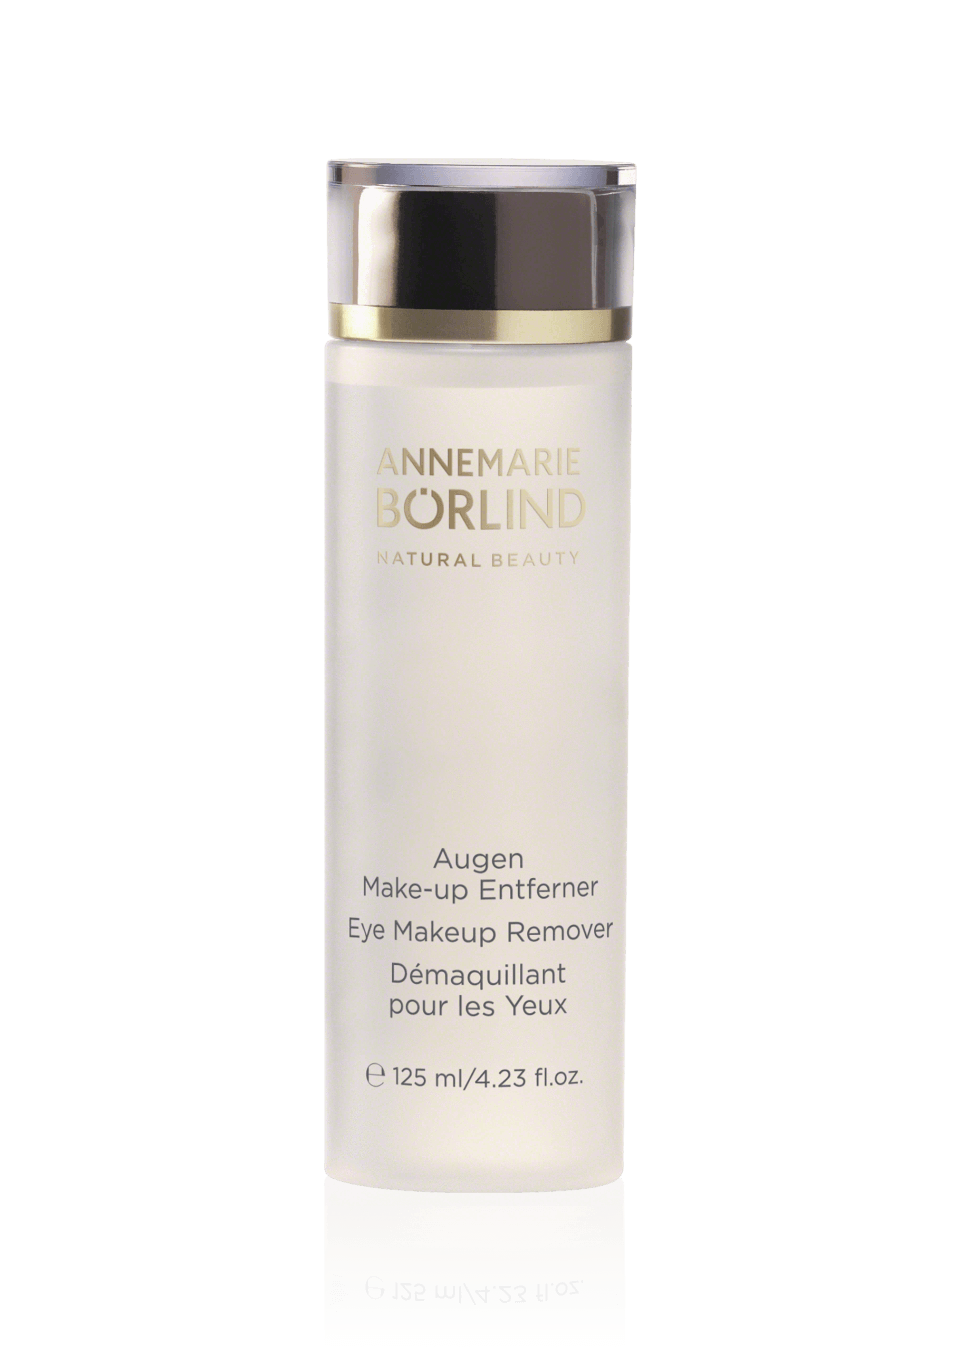 Personal Care - Annemarie Borlind Eye Makeup Remover, 125mL